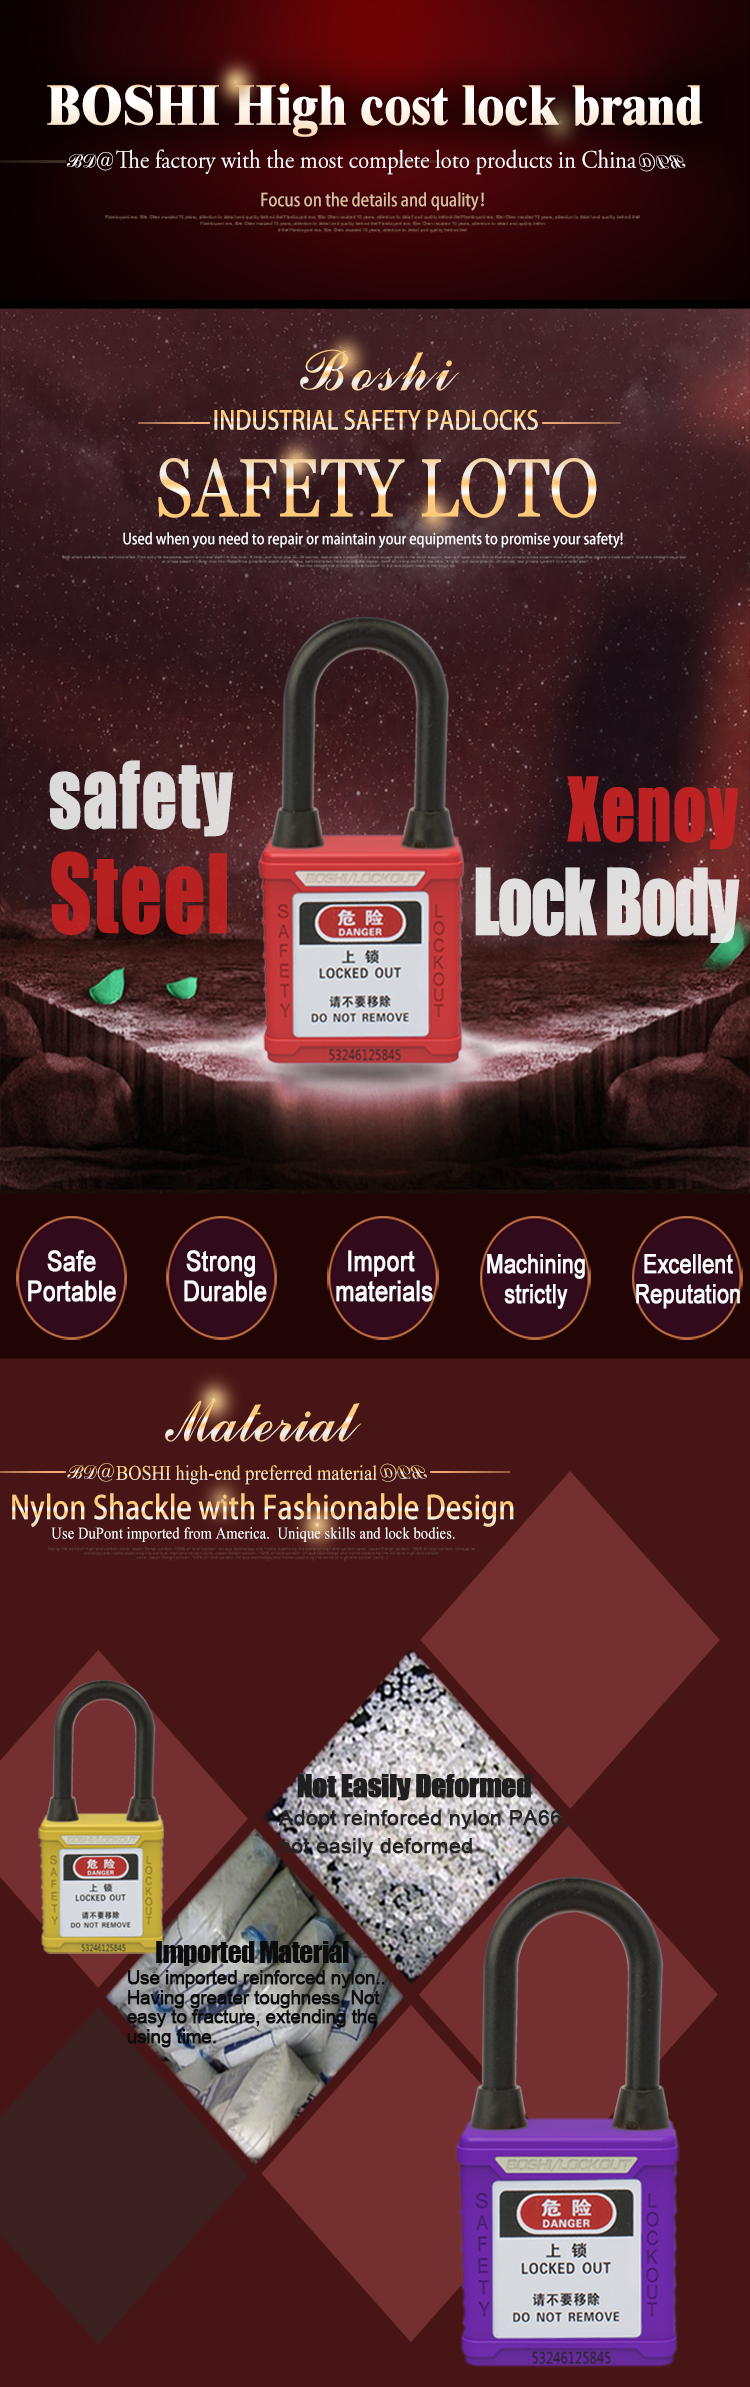 38mm Steel Shackle Waterproof Dustproof Safety Padlock Buy Zehn Gembok Red Bd G11dpg18dp 01